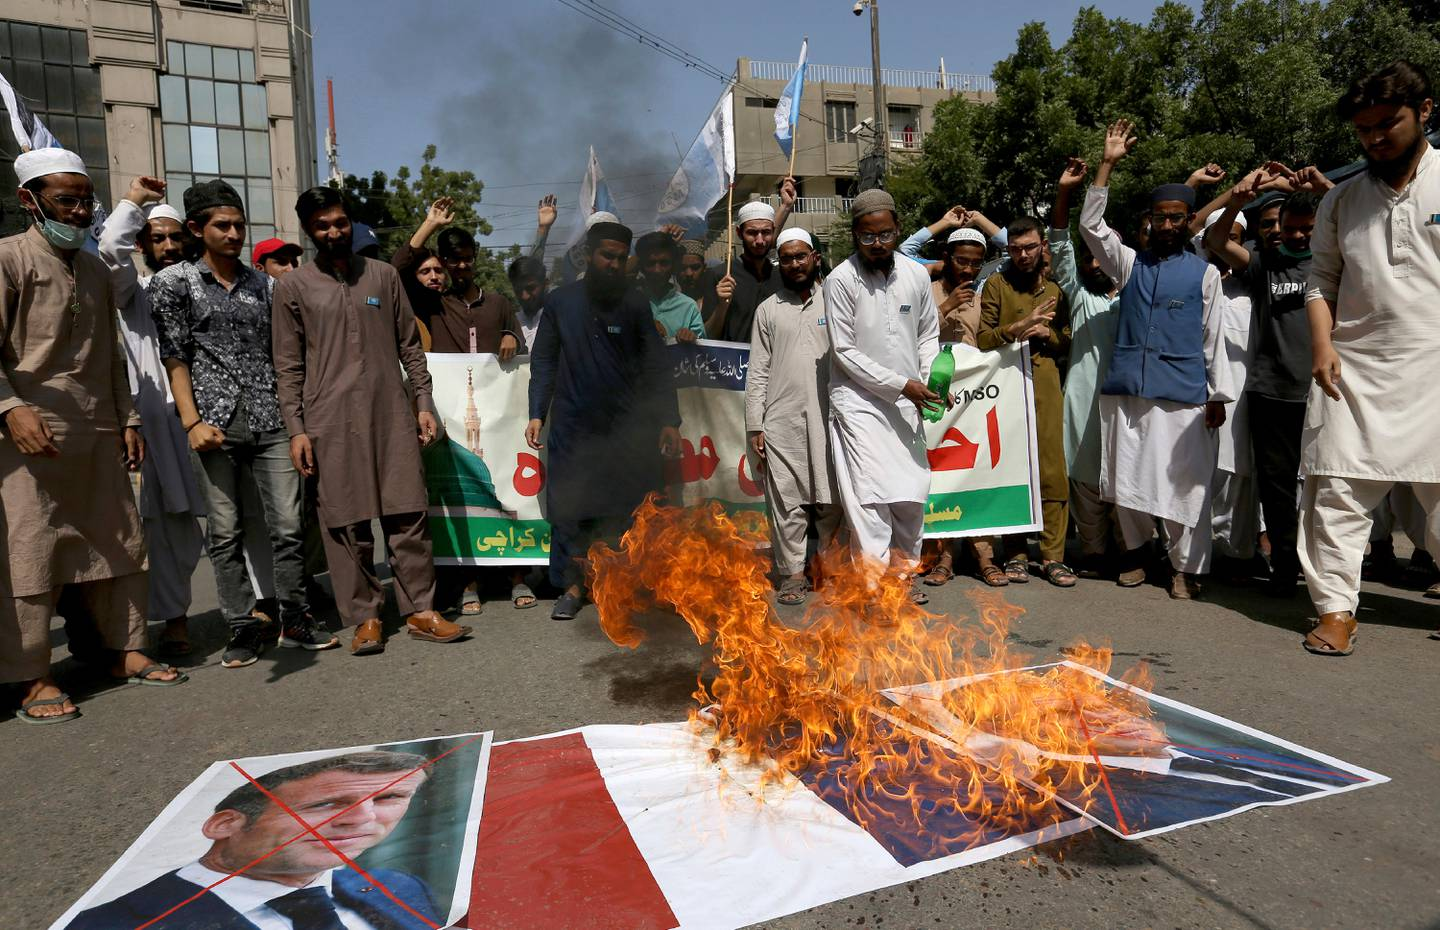 Supporters of the Muslims Students Organization burn a representation of a French national flag and defaced images of French President Emmanuel Macron during a protest against the president and against the publishing of caricatures of the Prophet Muhammad they deem blasphemous in Karachi, Pakistan, Friday, Oct. 30, 2020. Muslims have been calling for both protests and a boycott of French goods in response to France's stance on caricatures of Islam's most revered prophet. (AP Photo/Fareed Khan)